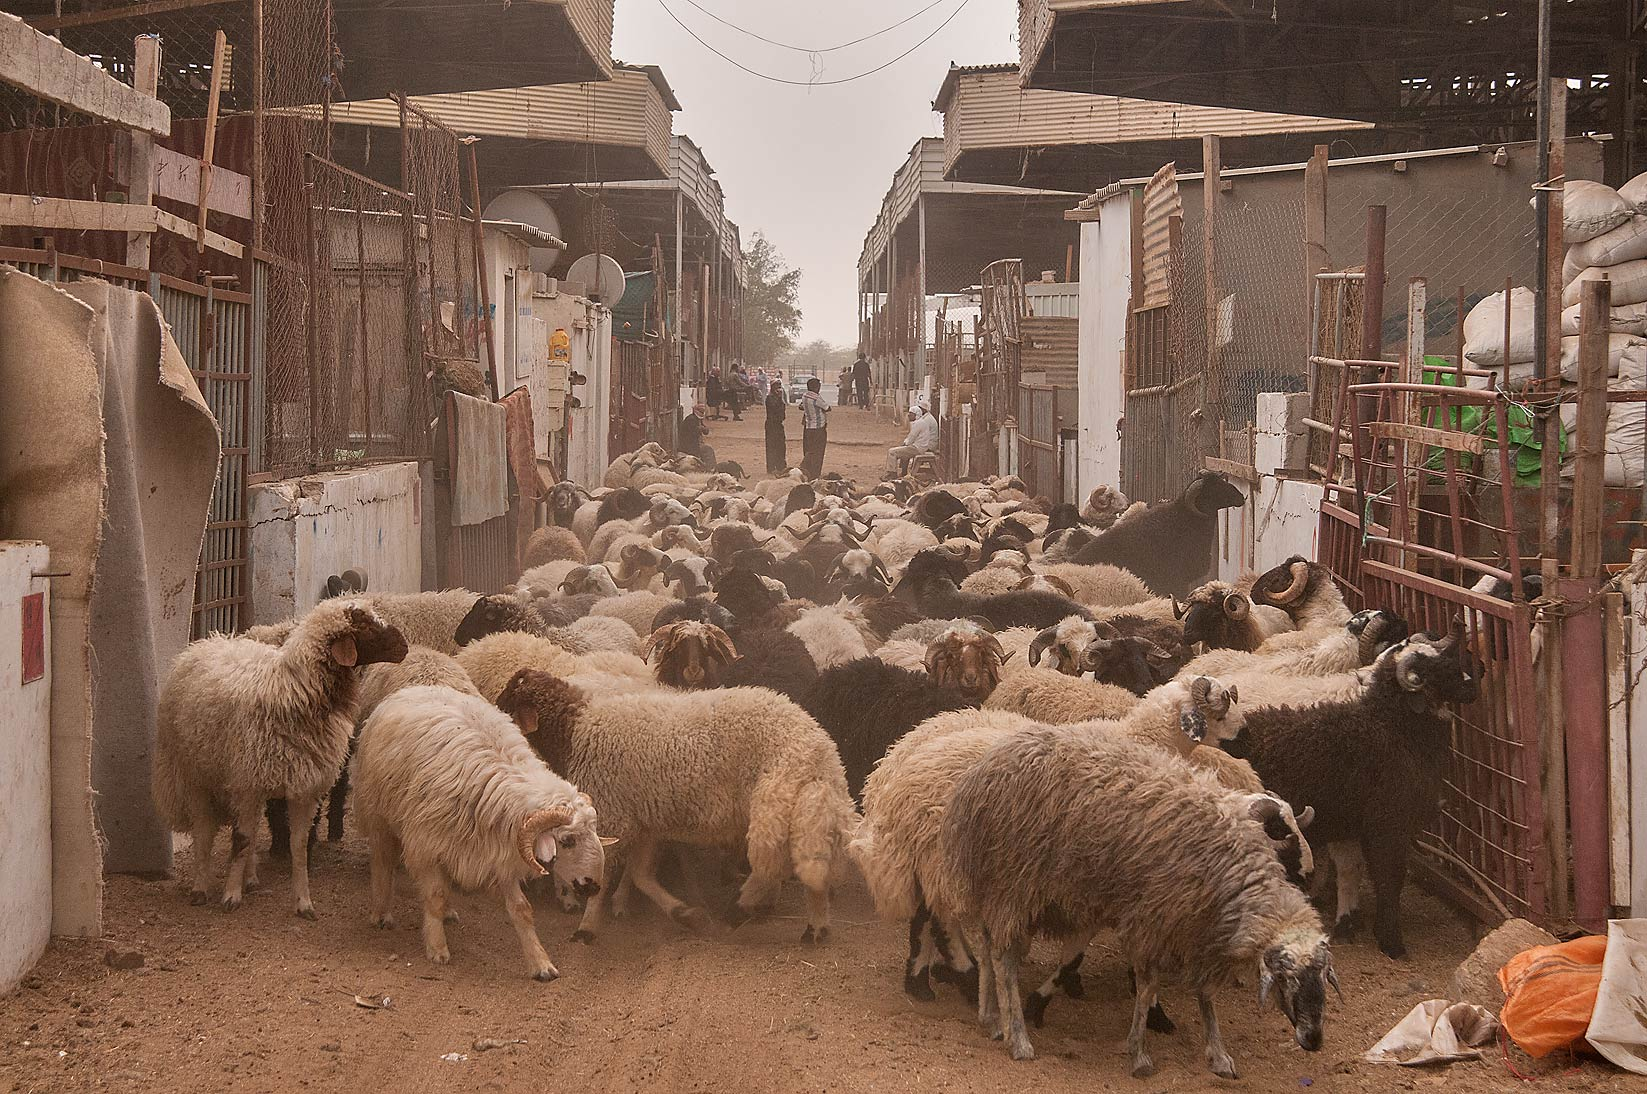 Herd of a sheep in livestock markets, Abu Hamour area. Doha, Qatar